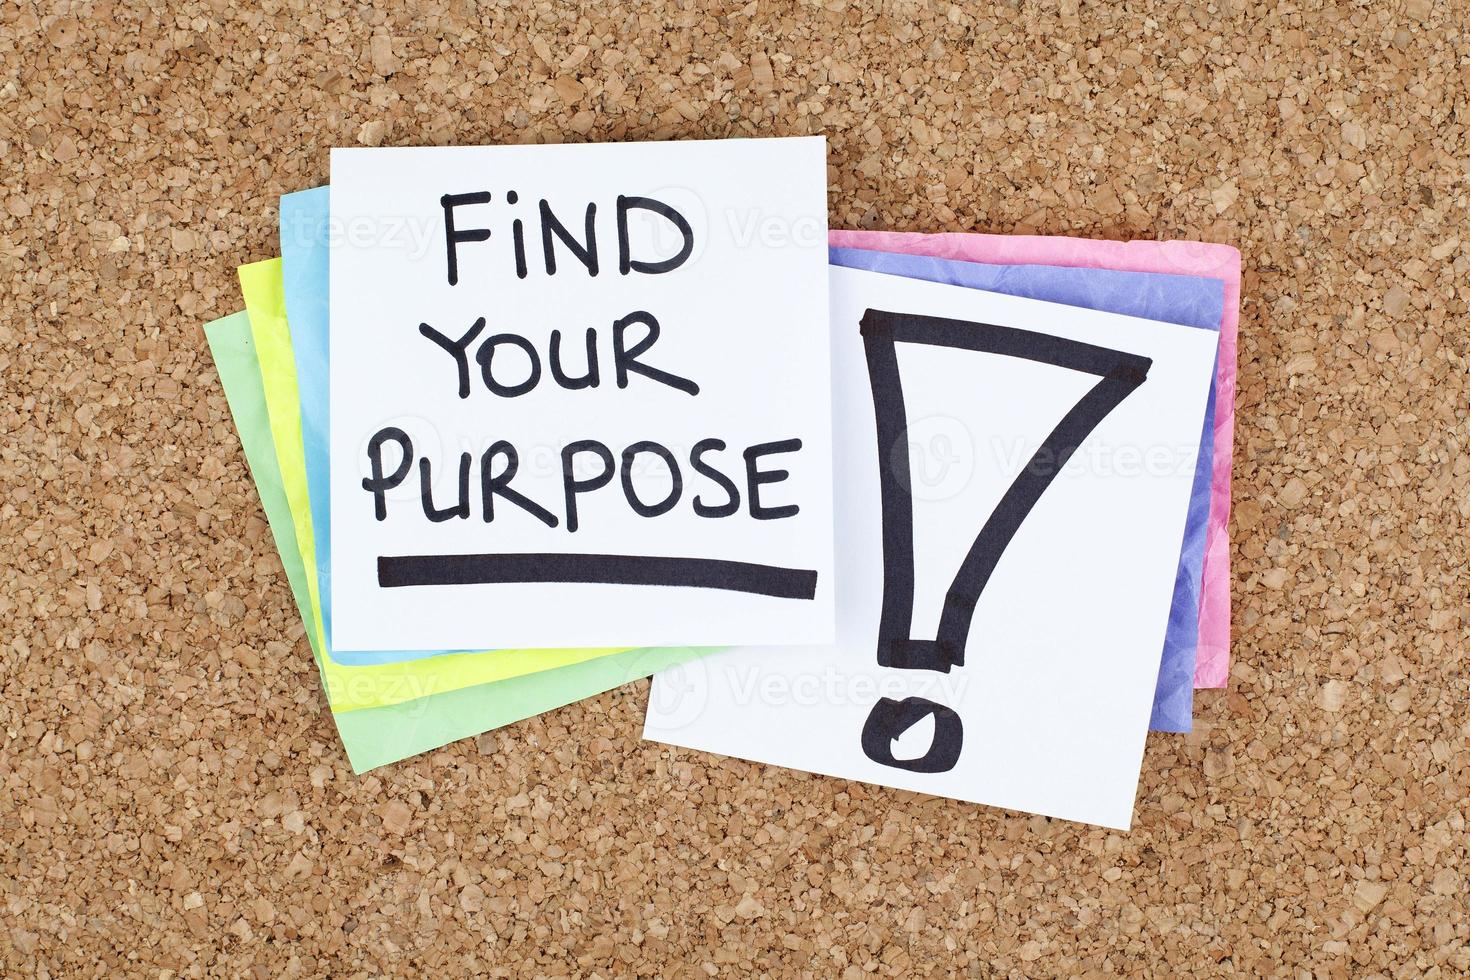 Find Your Purpose photo